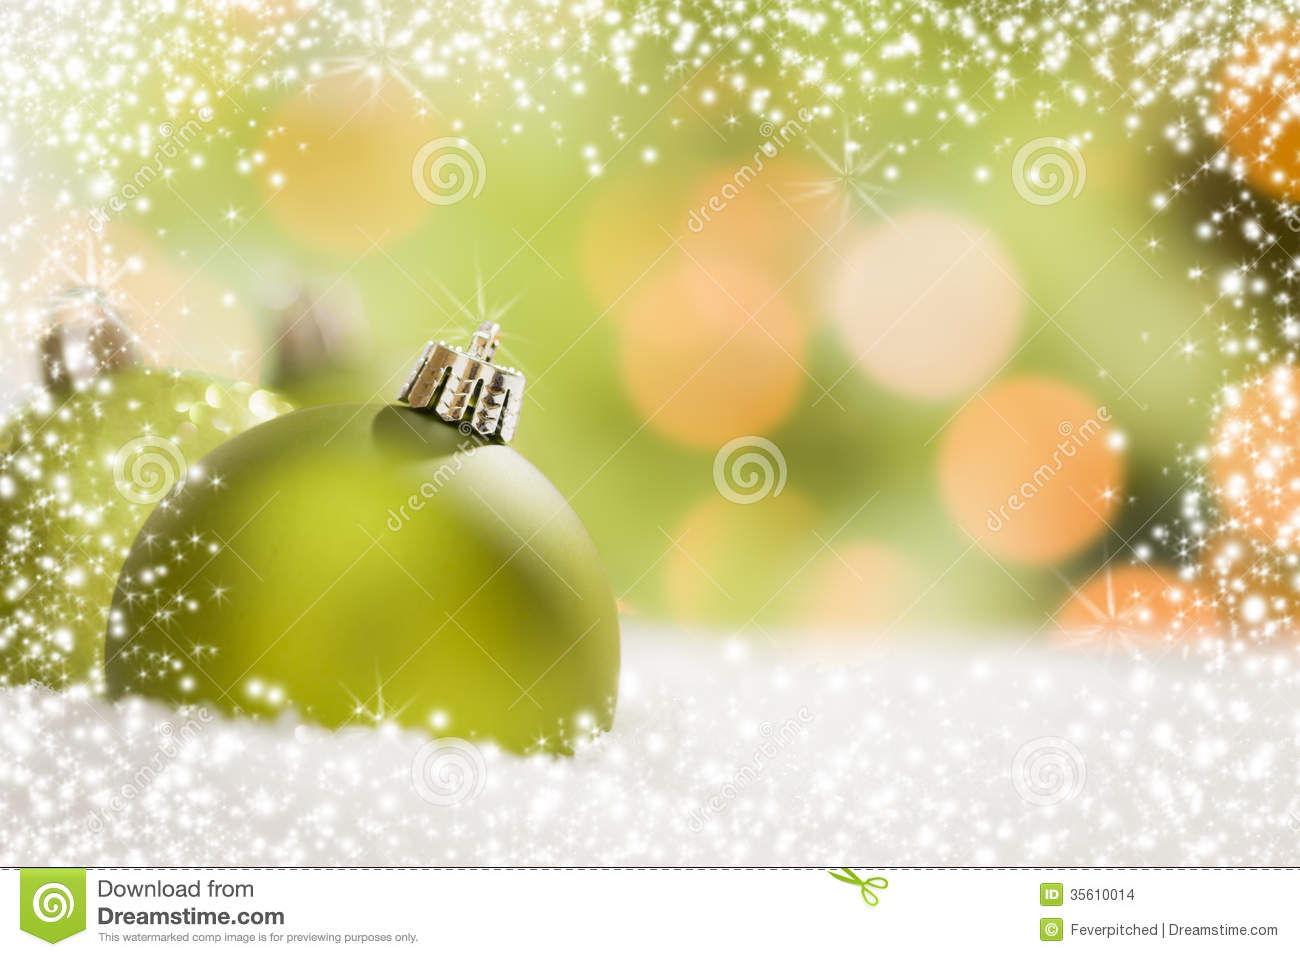 green christmas ornaments on snow over an abstract